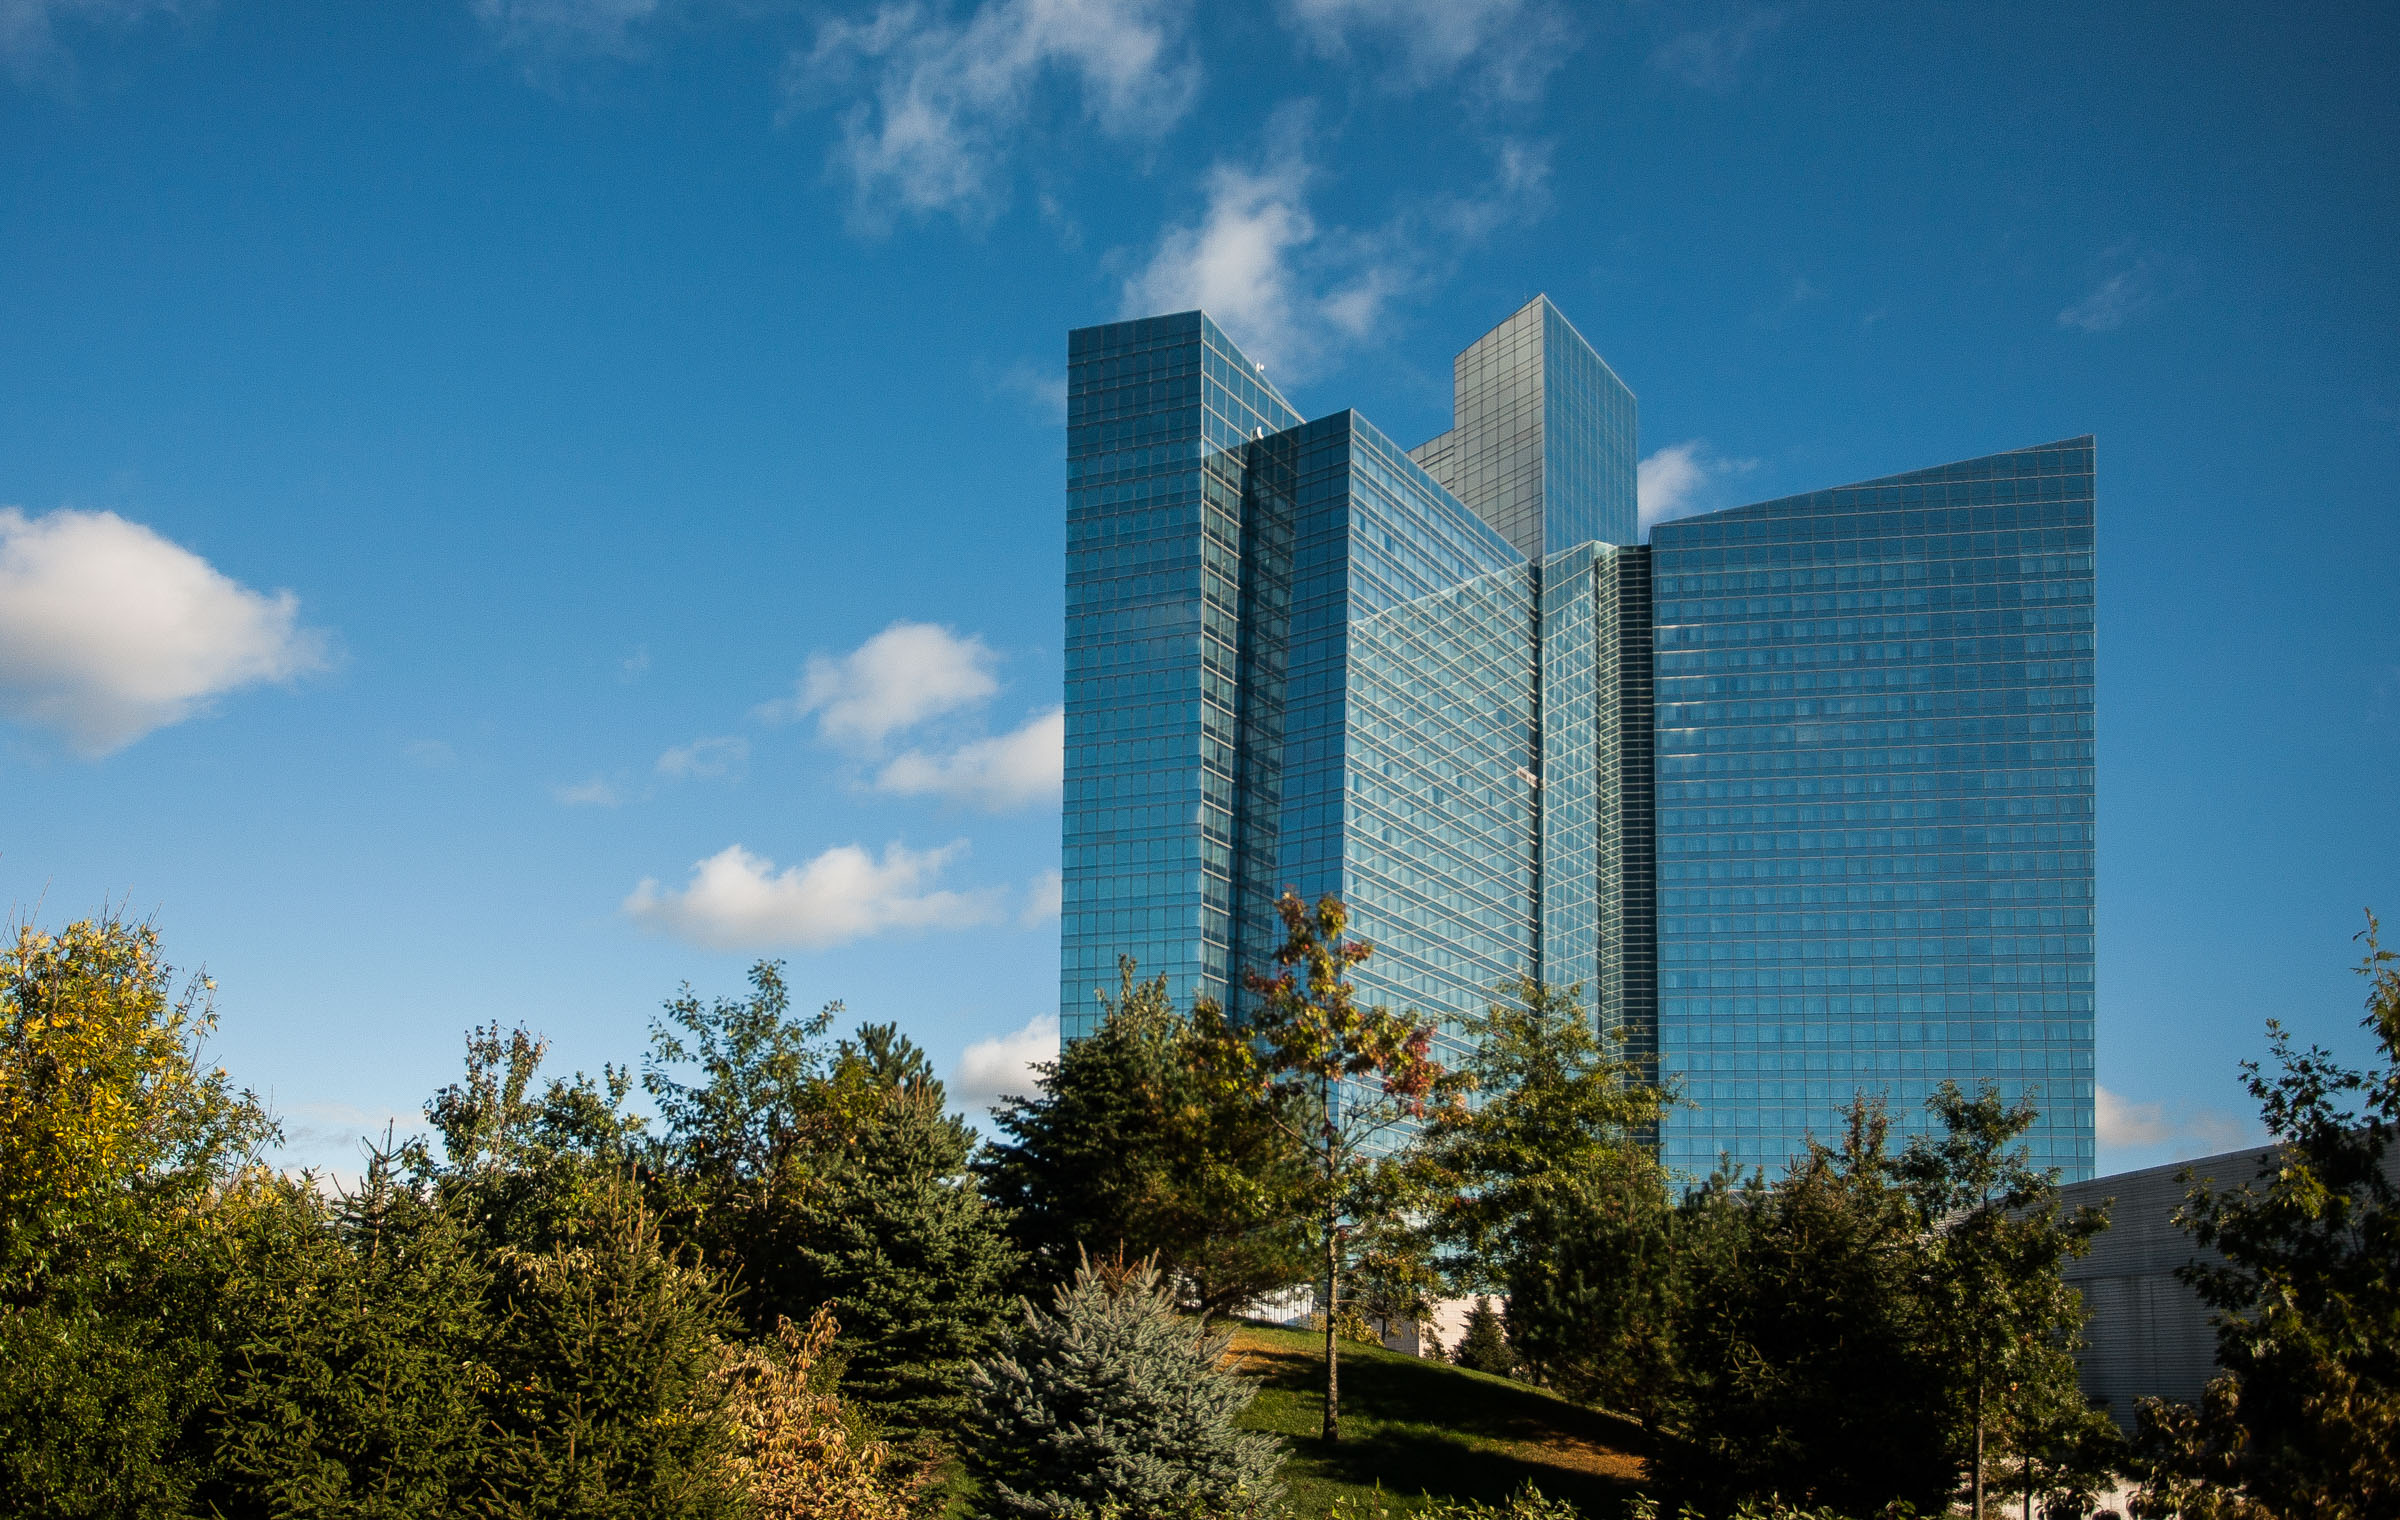 The Mohegan Sun by Steven Martine Florida advertising architecture photographer